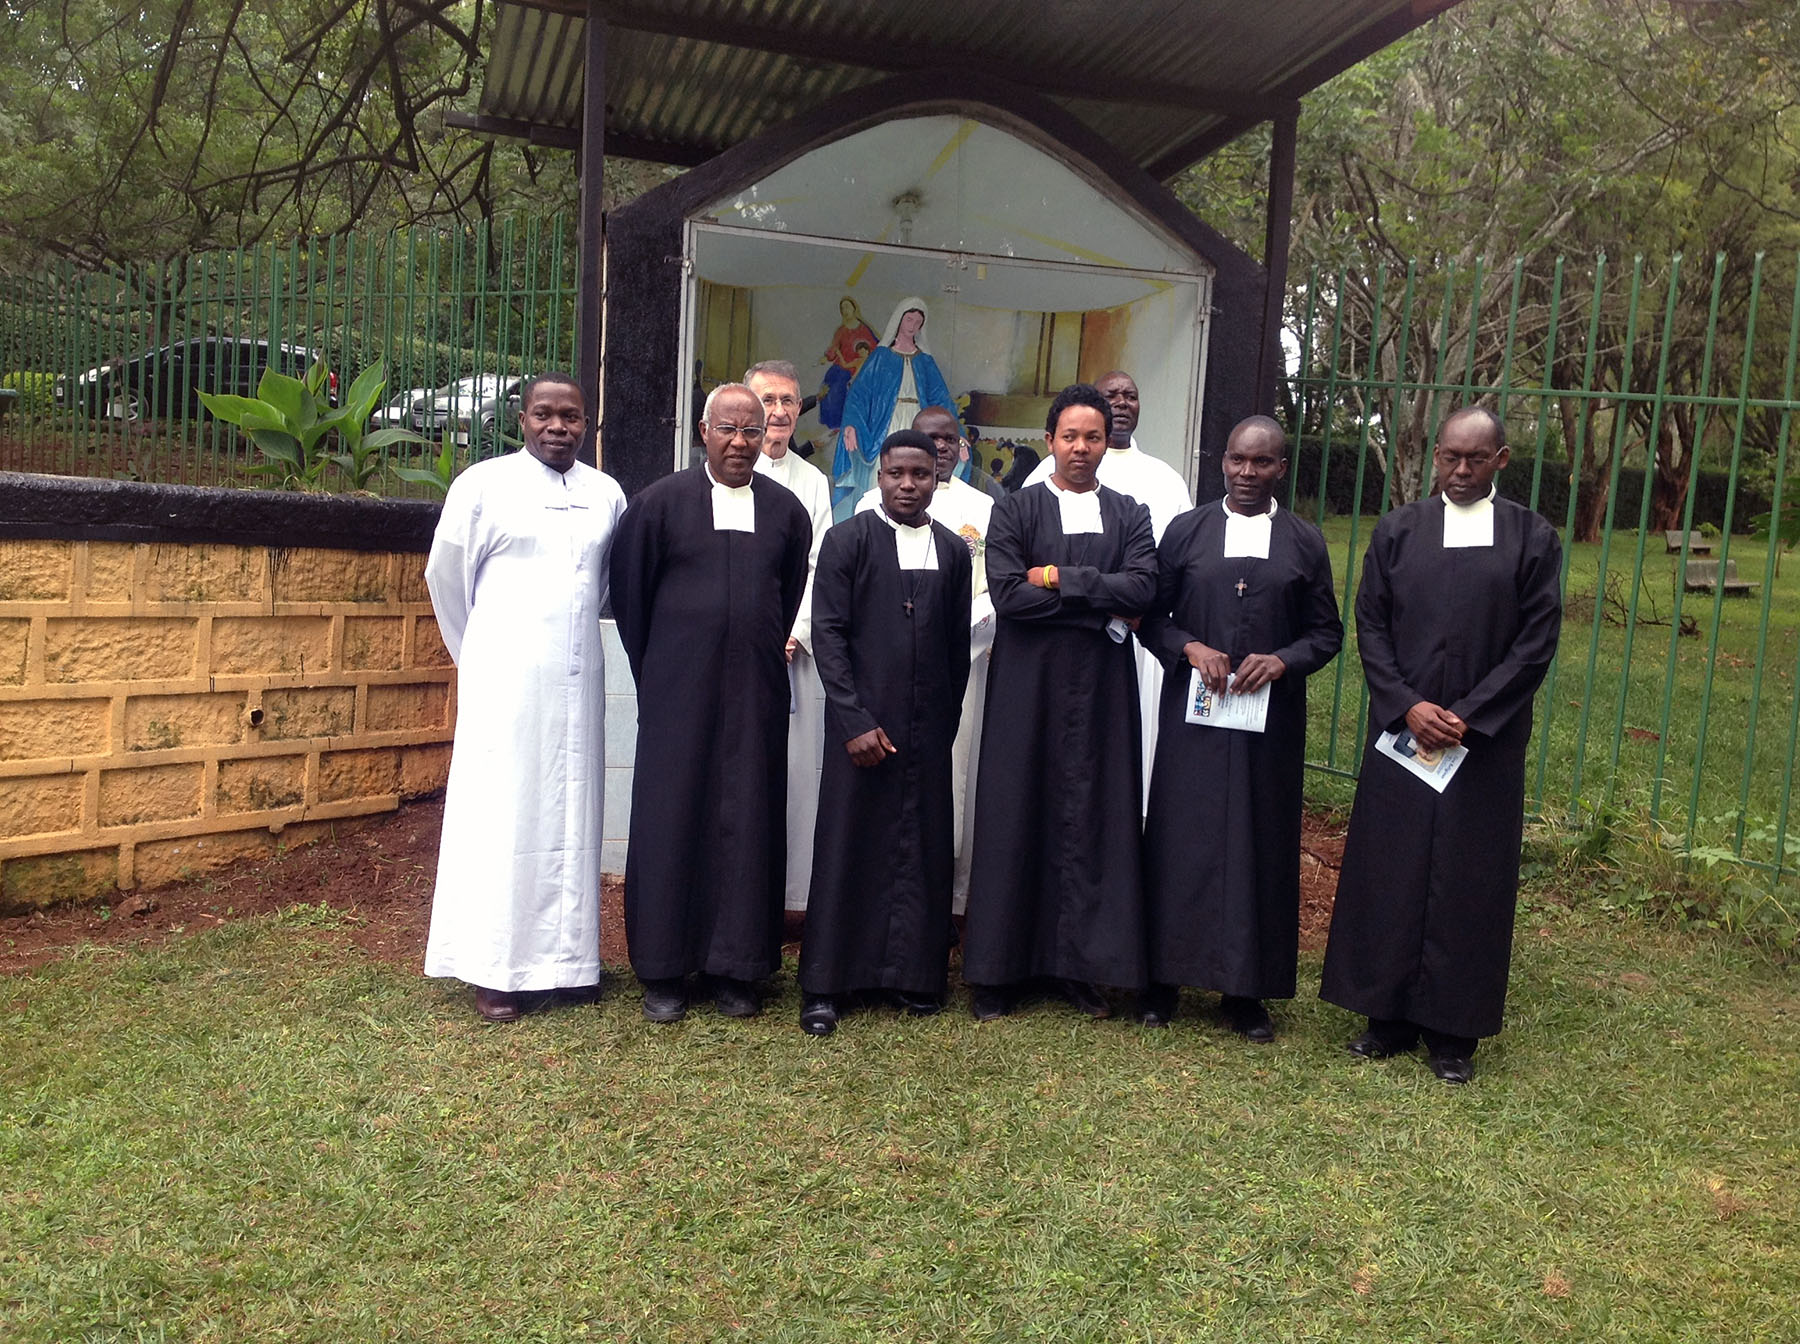 Newly Professed with Brothers leaders